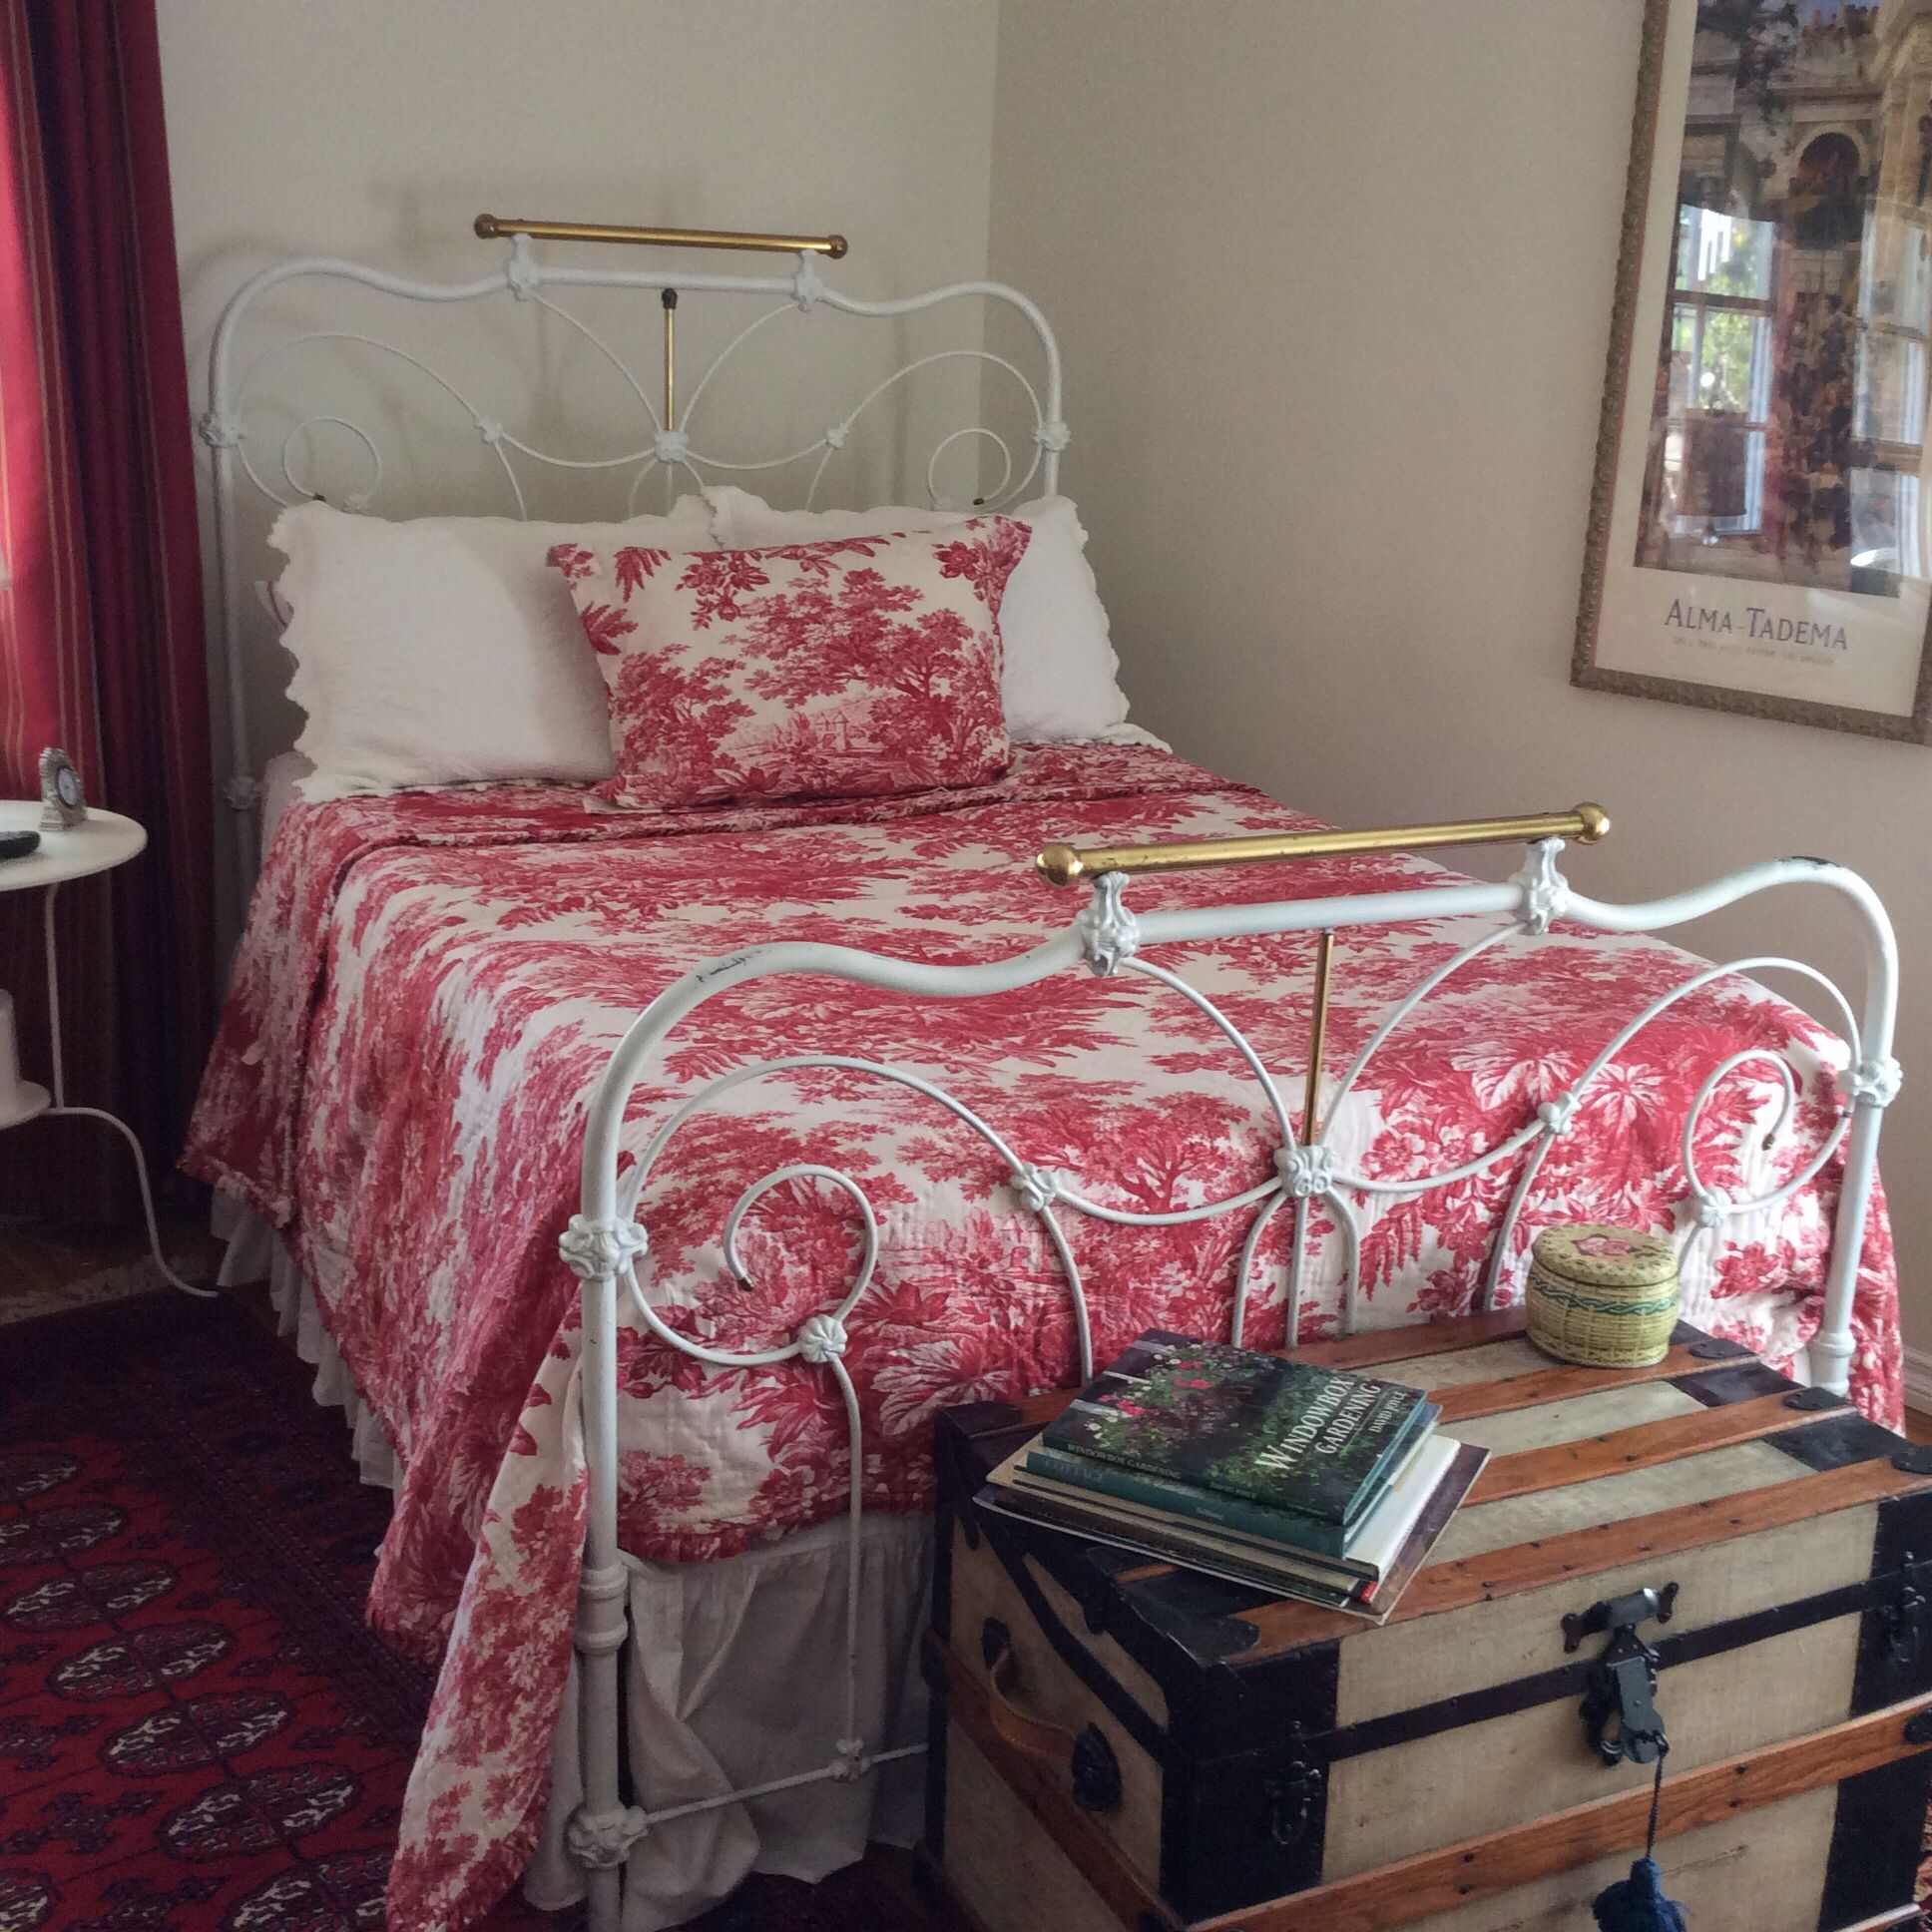 Best Vintage Iron Bed And Cranberry Toile In My Bedroom 400 x 300